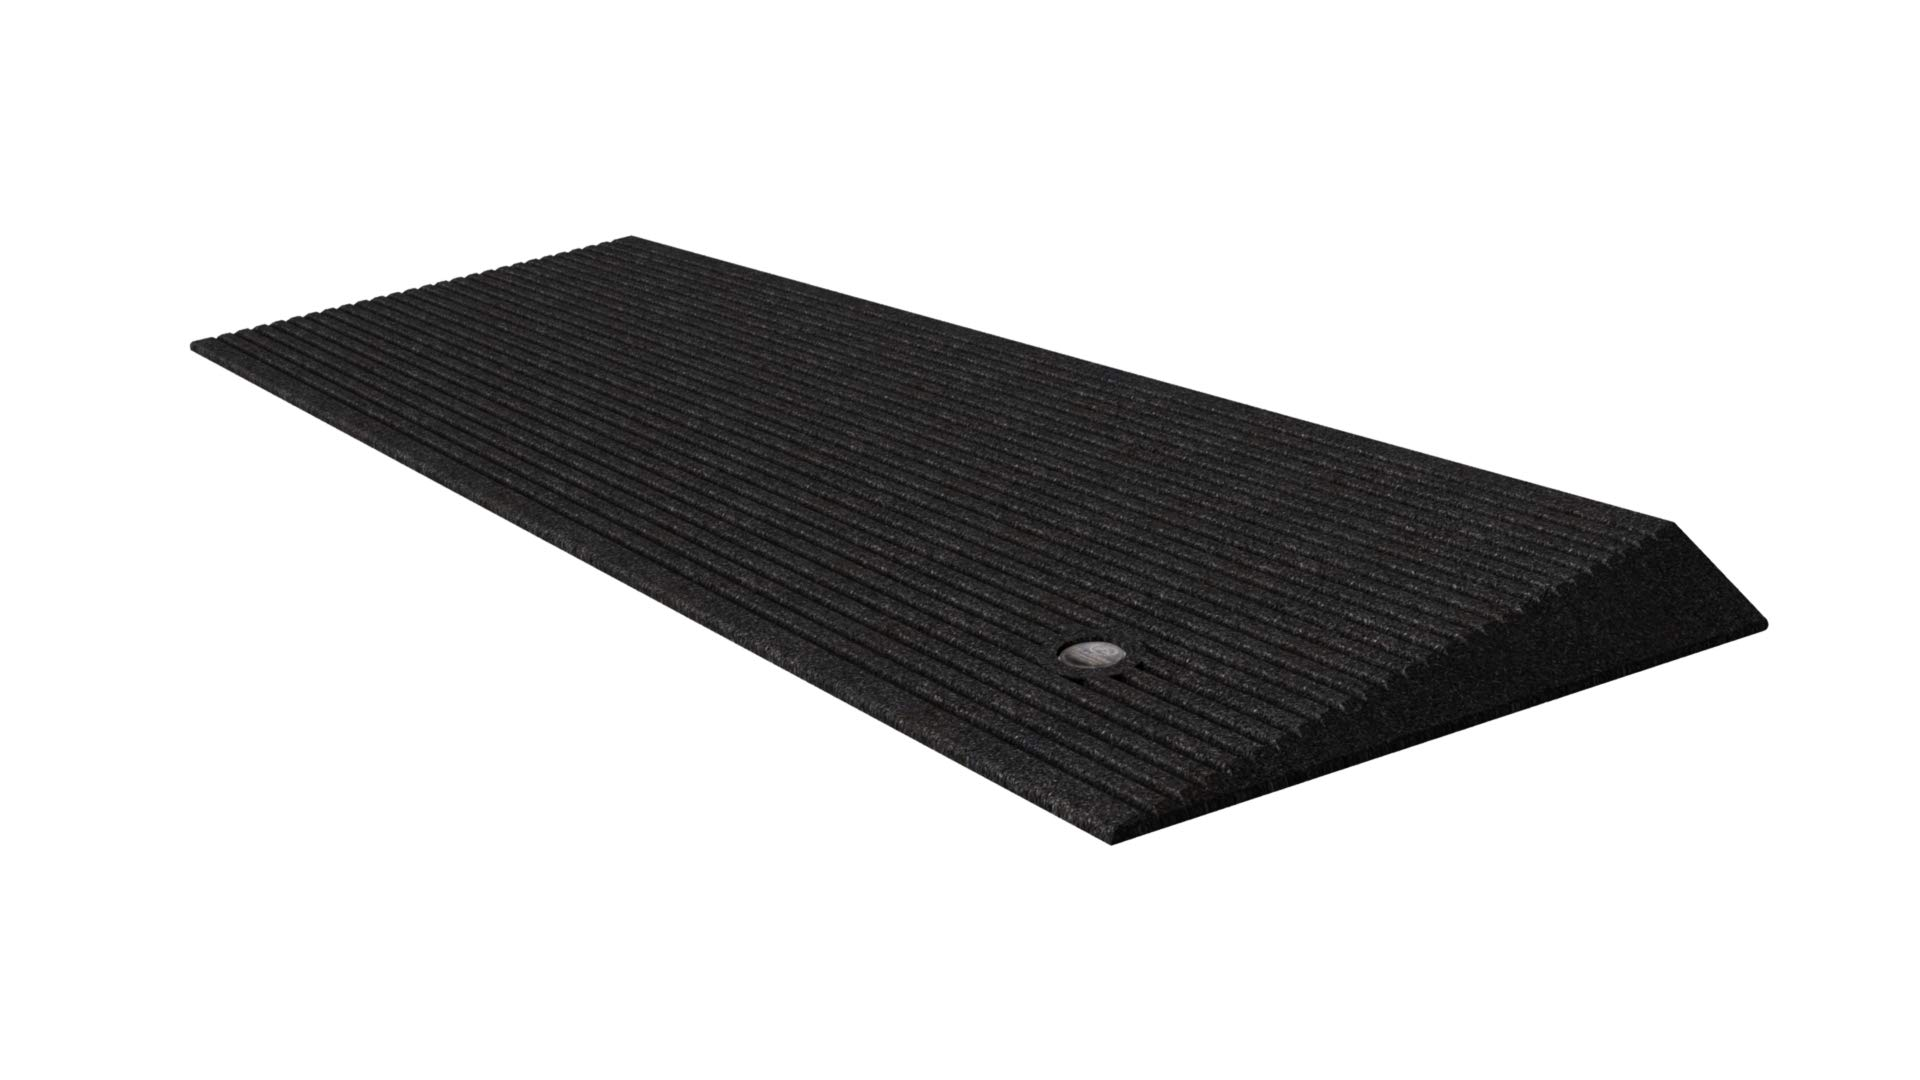 EZ-ACCESS TRANSITIONS Rubber Angled Entry Mat in Black, 1.5'' Rise by EZ-Access